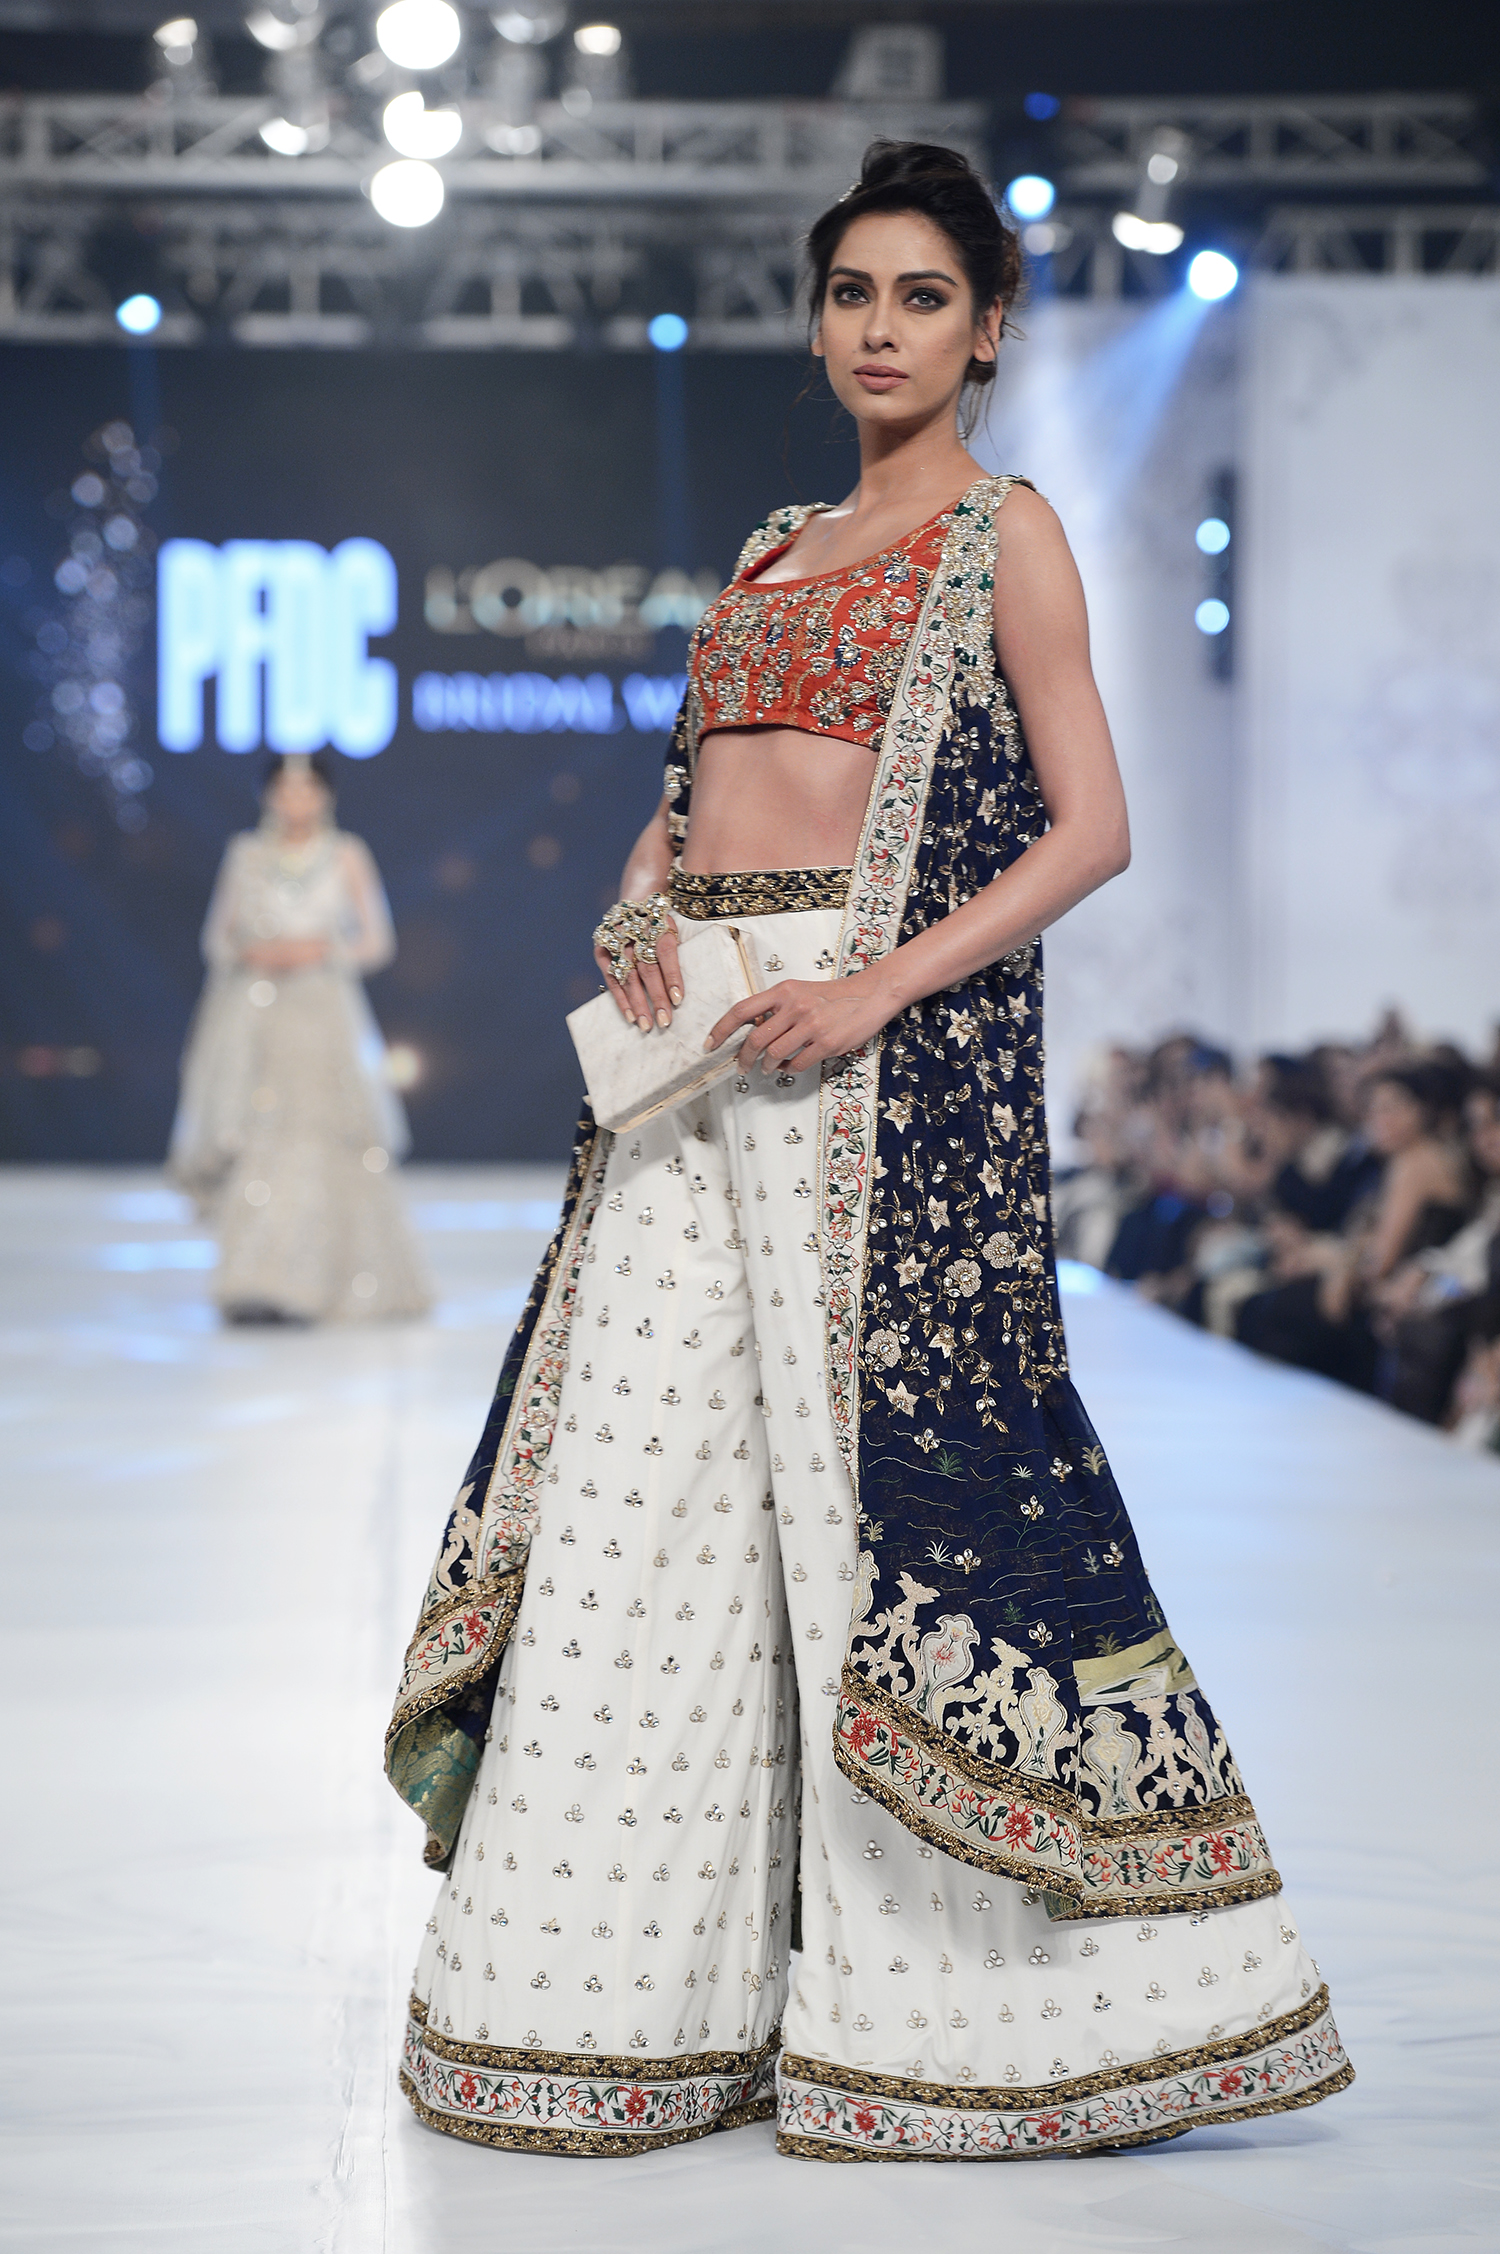 Mahgul - PFDC L'Oréal Paris Bridal Week - Photography by Faisal Farooqui, Dragonfly